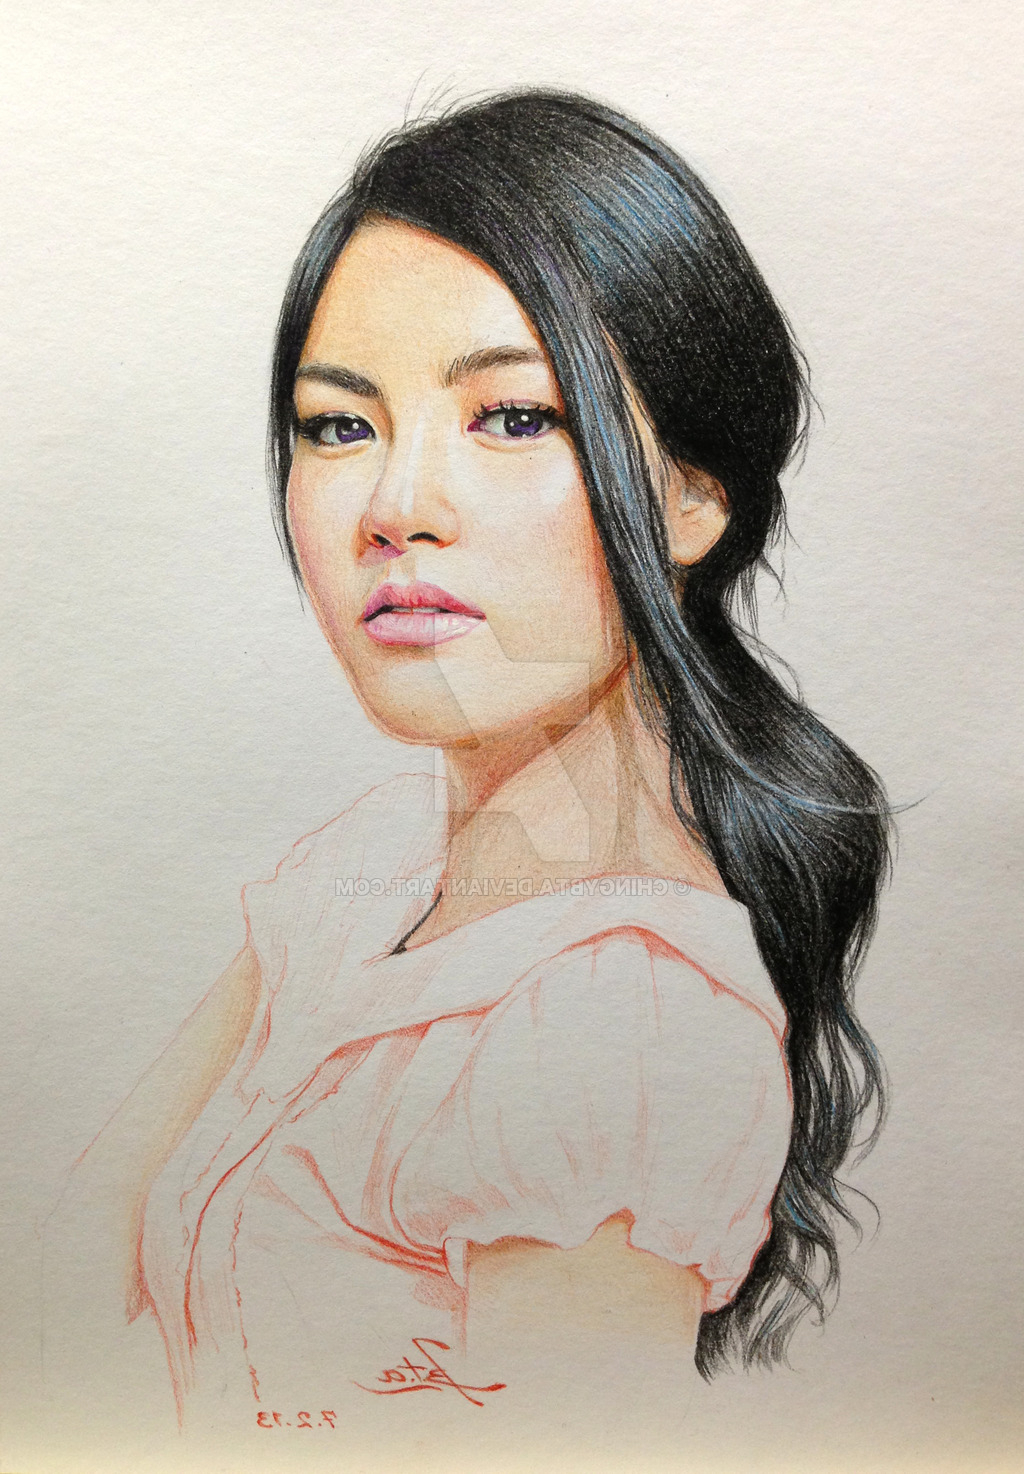 1024x1474 Pencil Drawing Or Sketches Of A Chinese Girl Asian Girl By